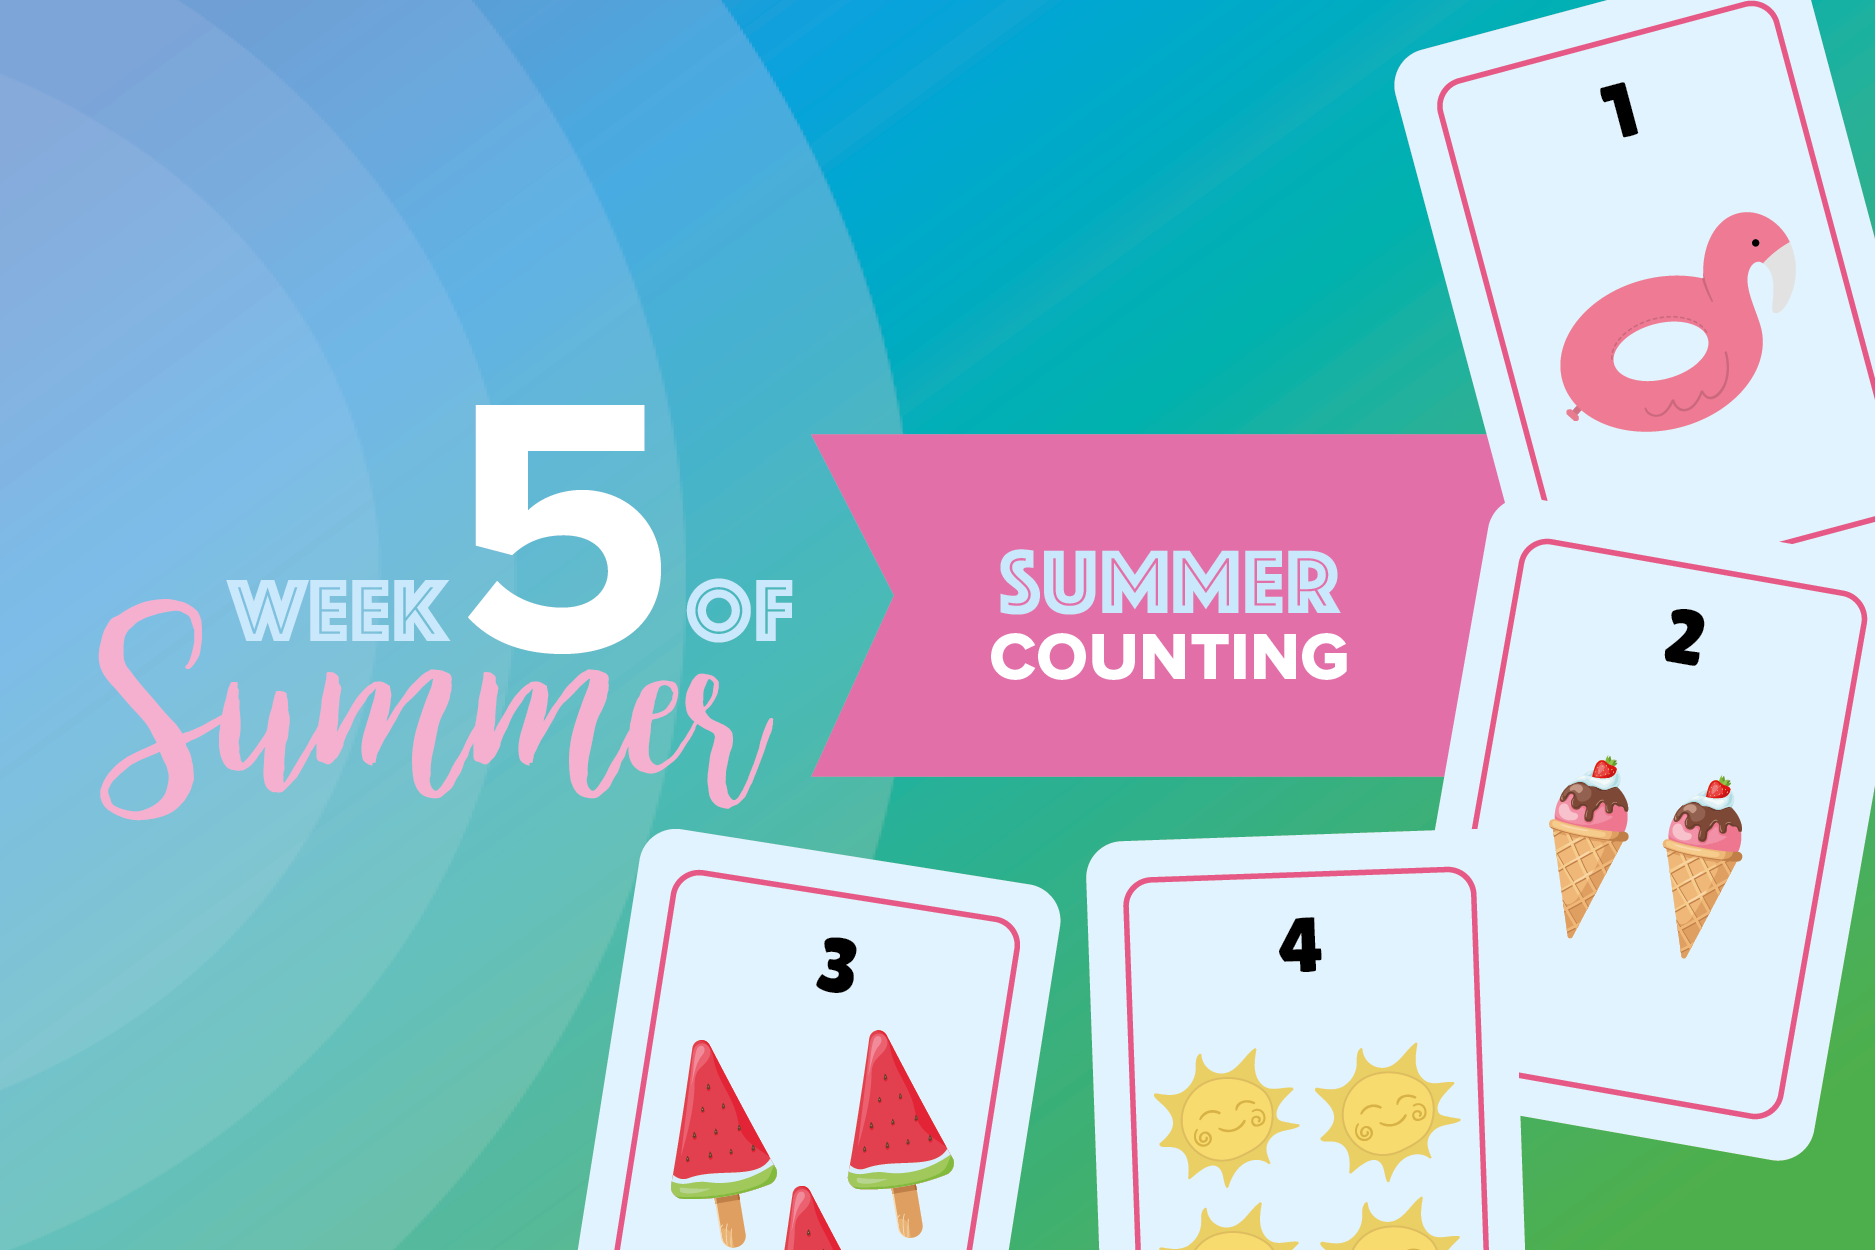 6 Weeks of Summer: week 5 1